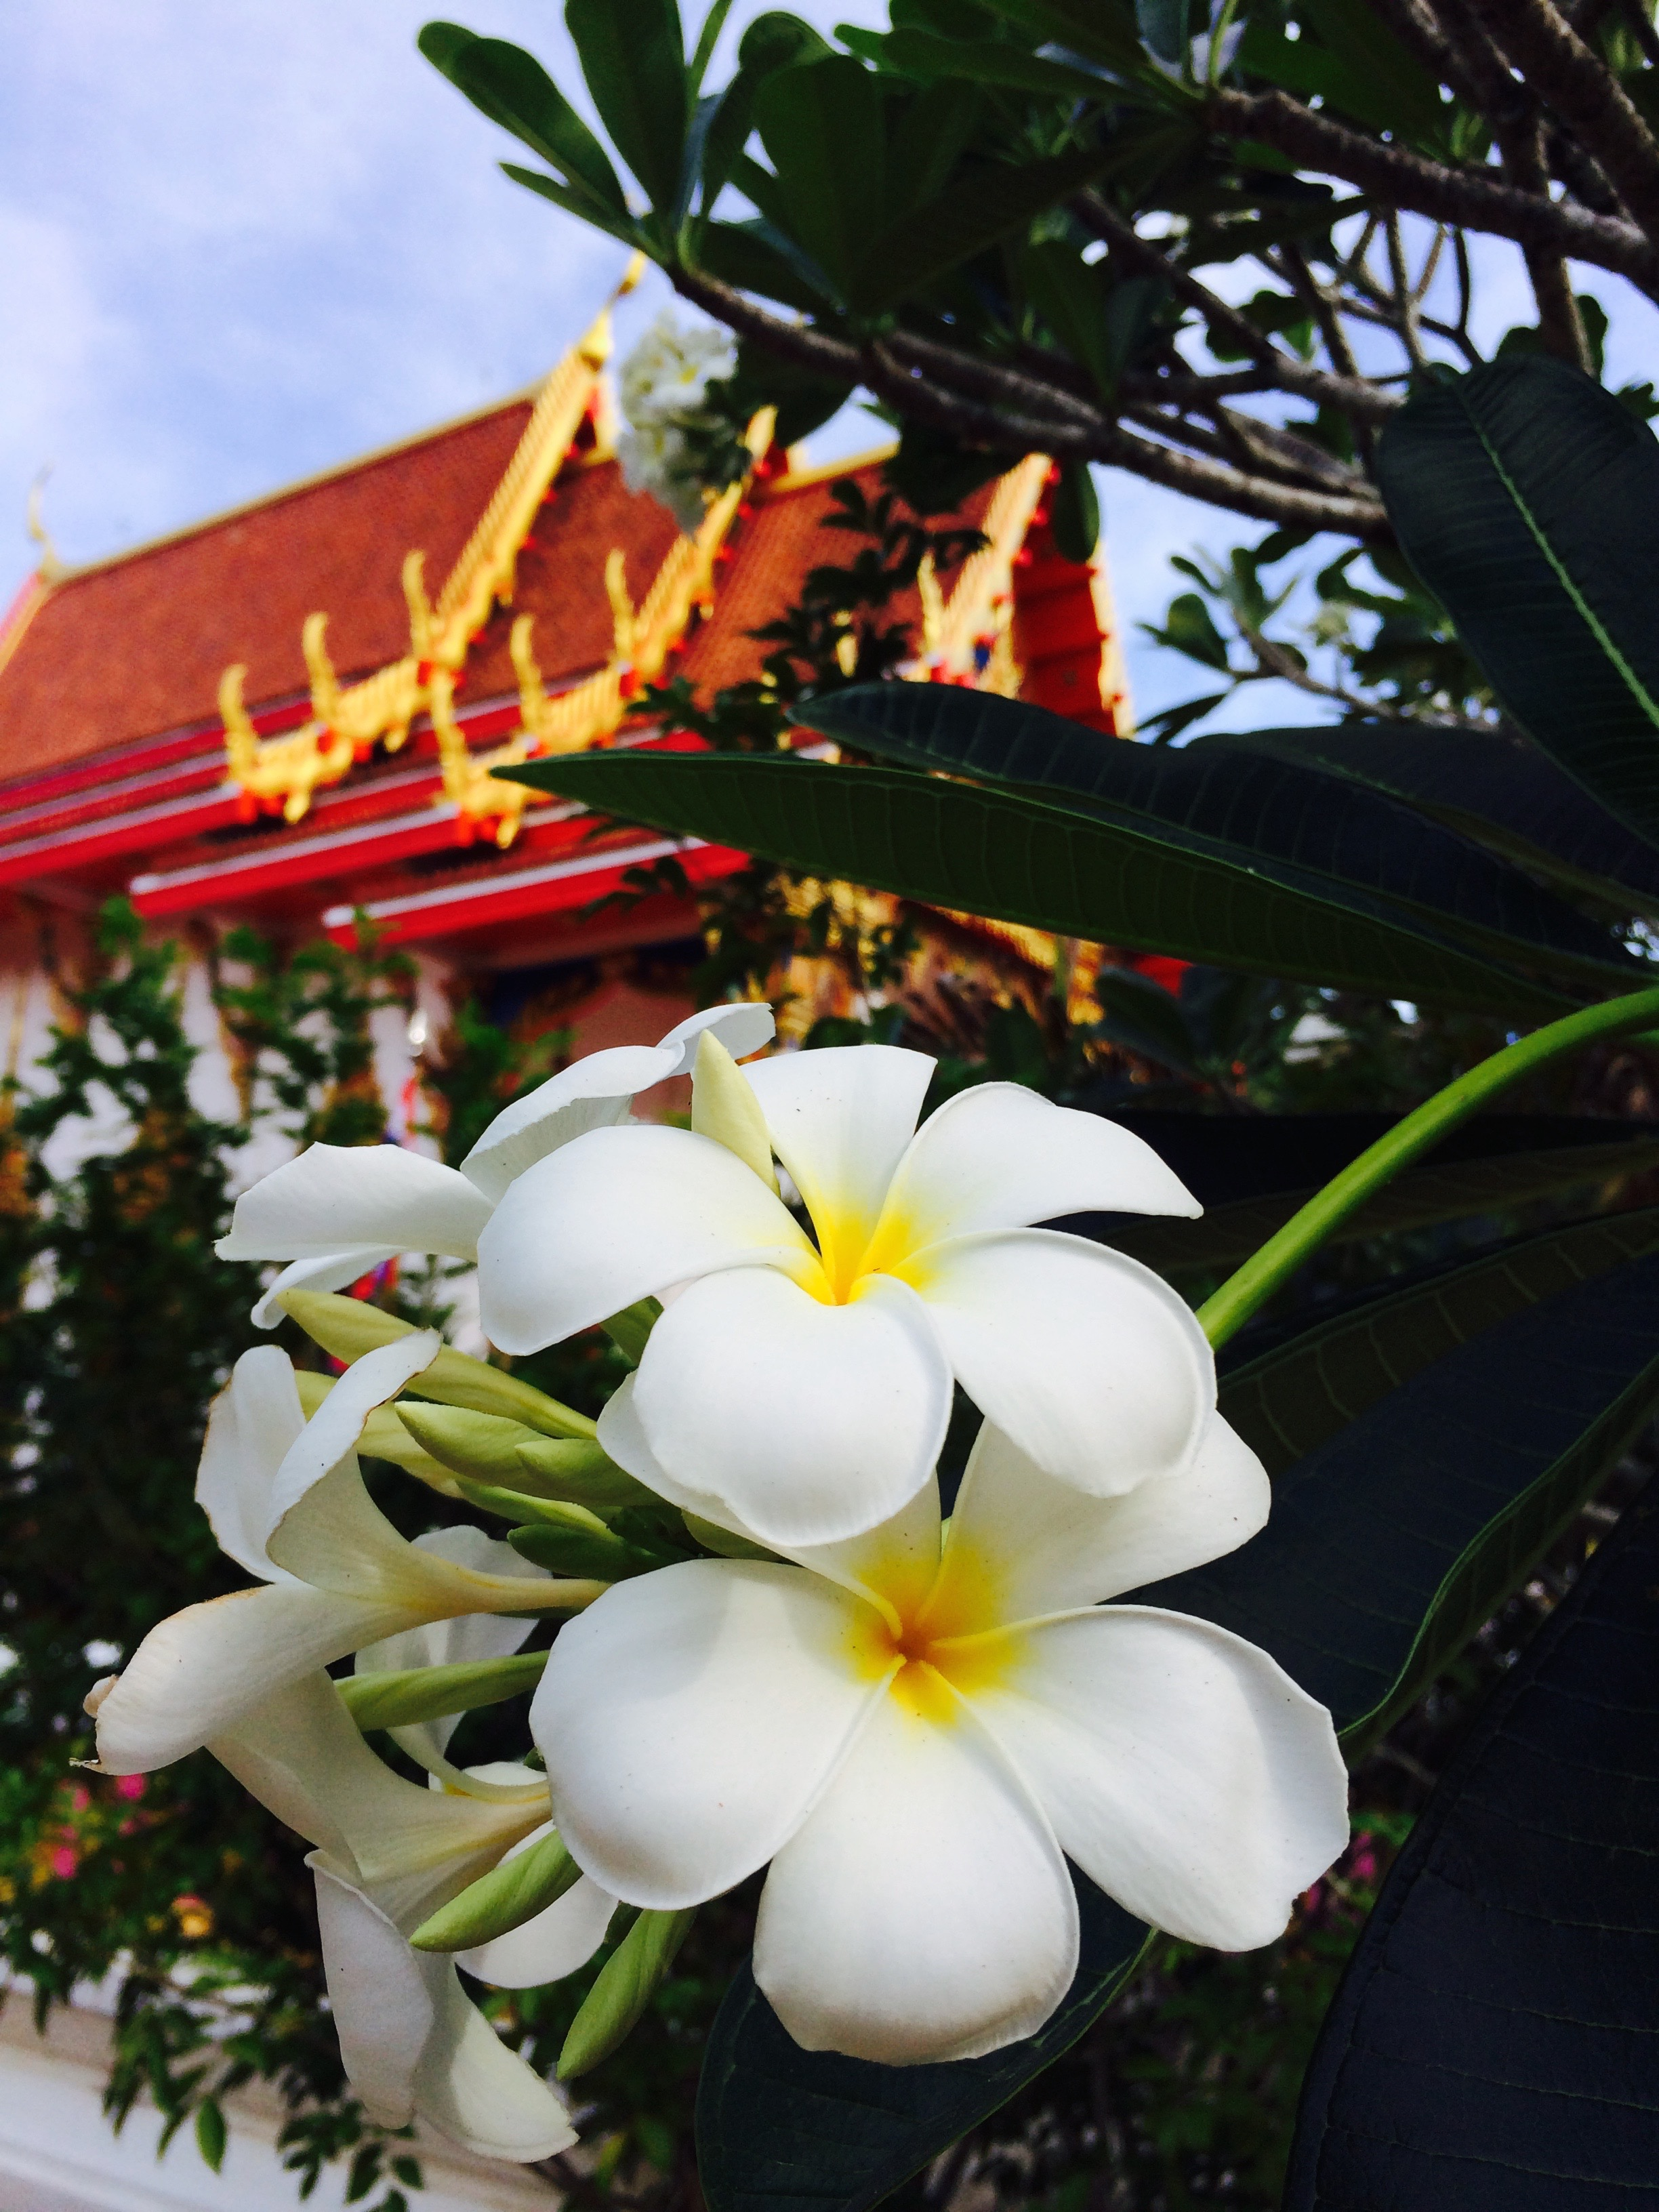 ~Thai Ceremony & Culinary Traditions~